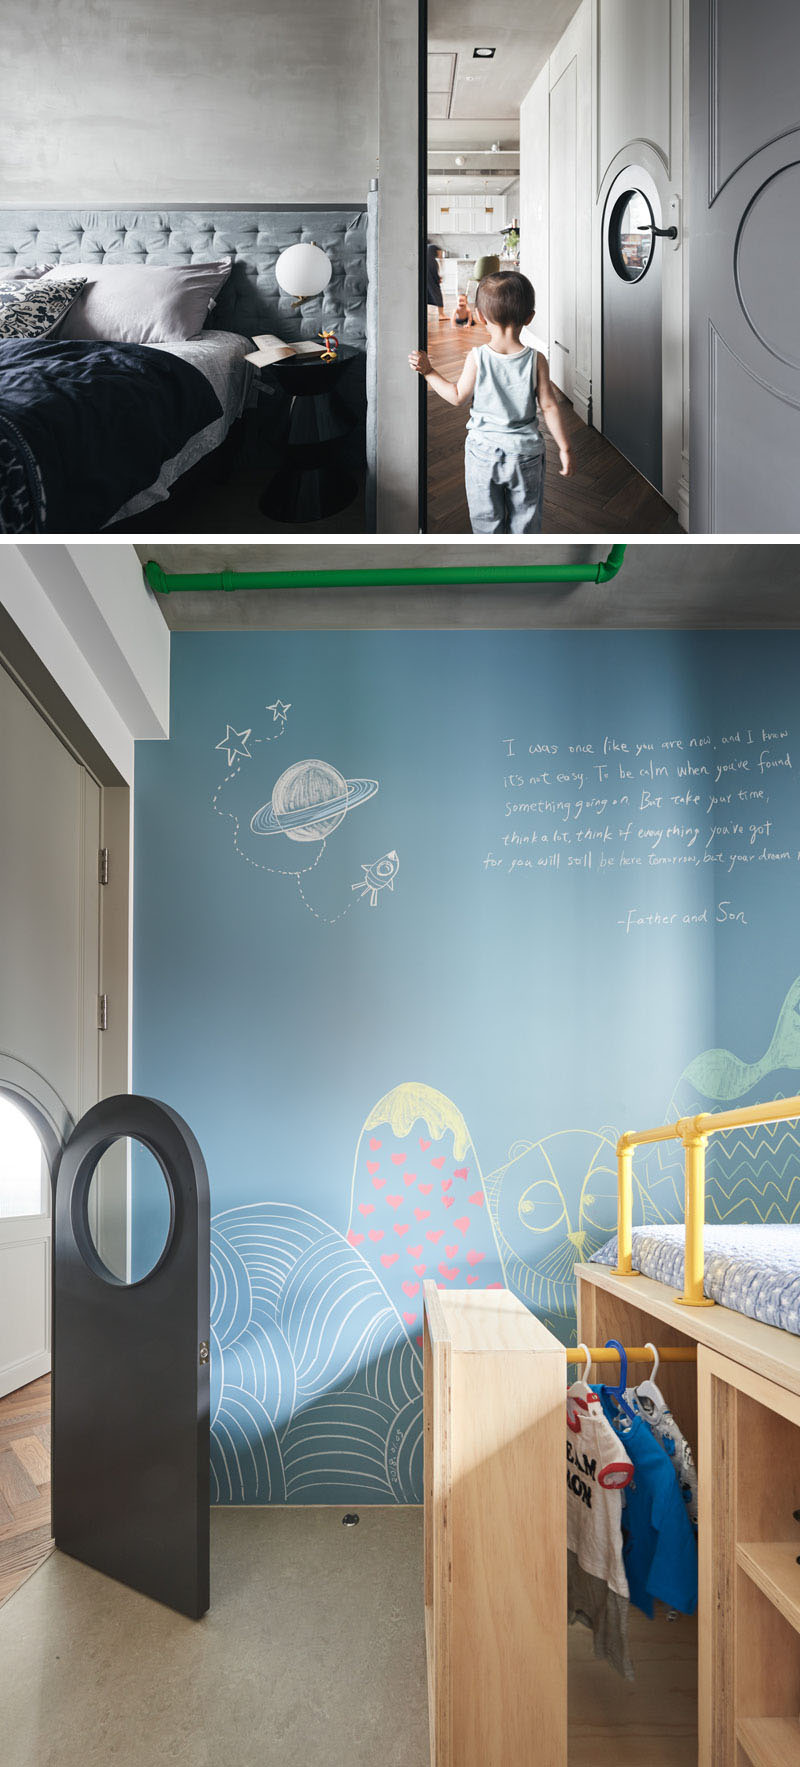 custom-designed-door-within-a-door-kids-room-010318-1242-02